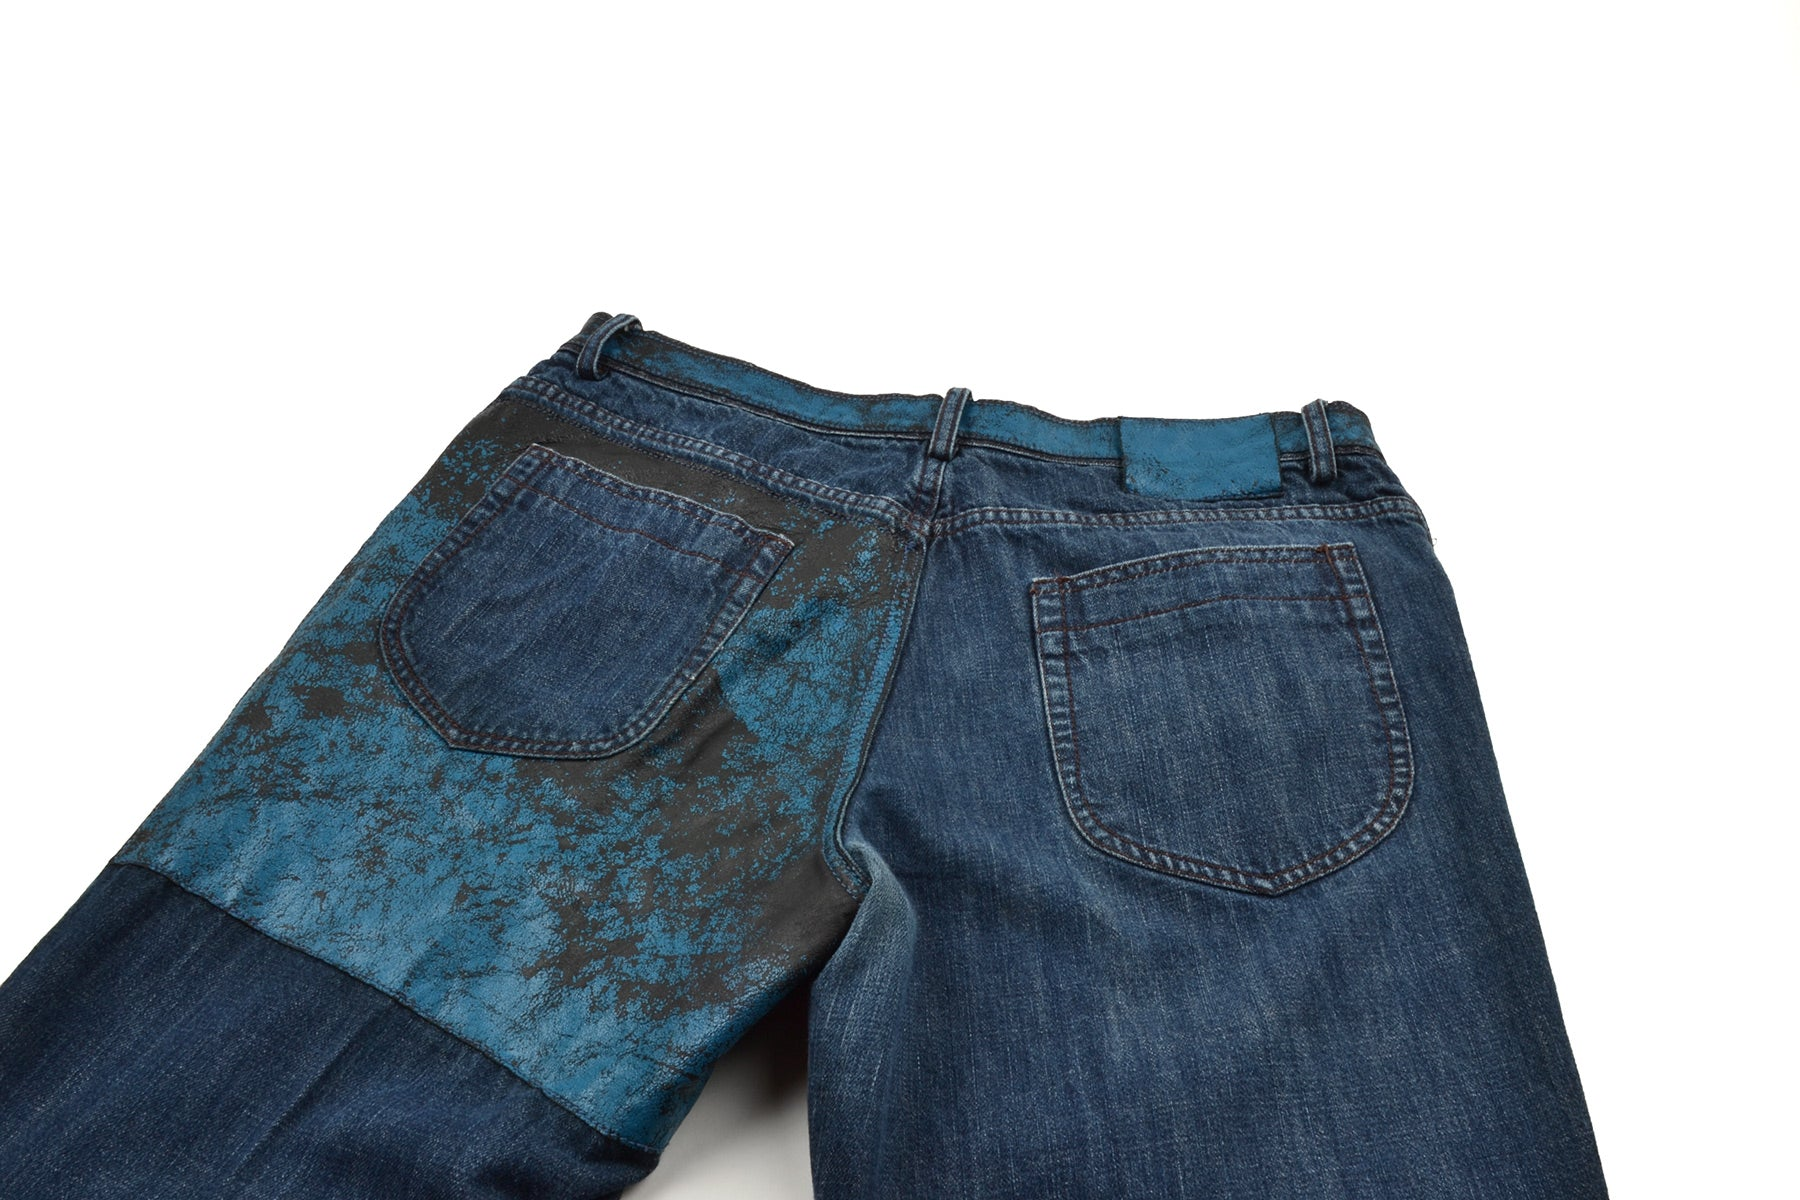 2006 S/S DENIM PANTS WITH LEATHER INSERTS